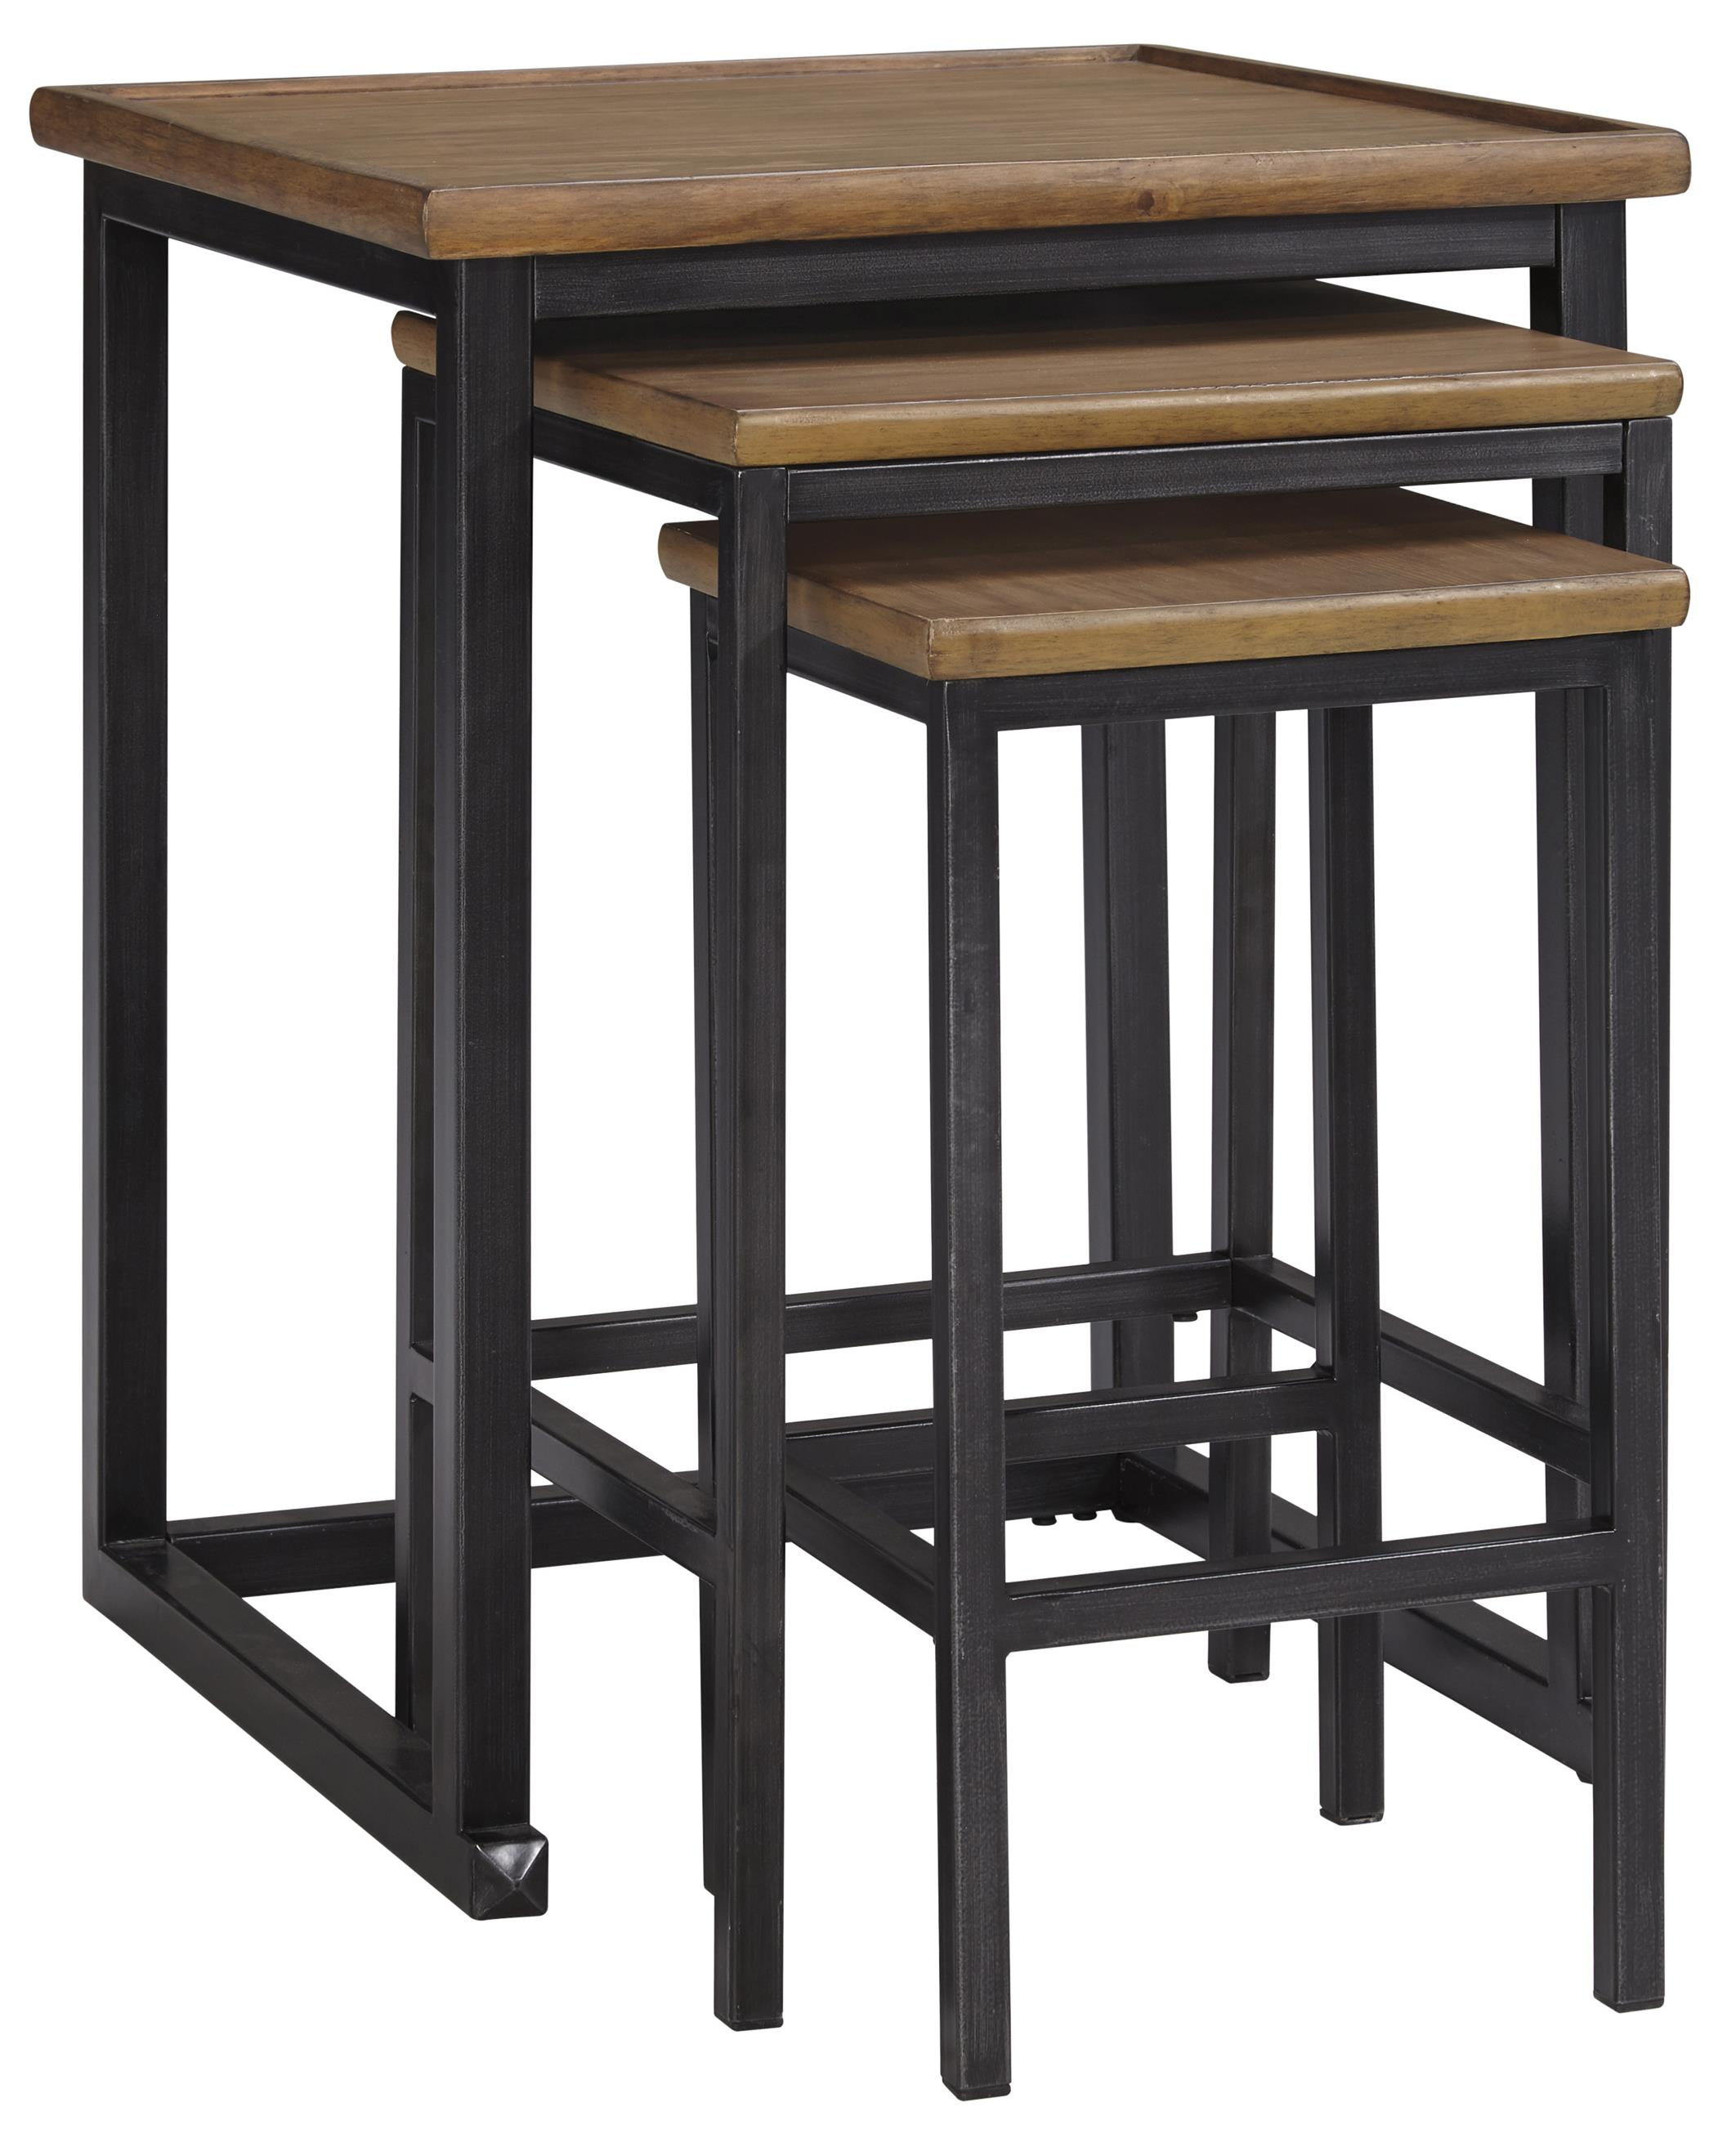 Signature Design by Ashley Traxmore Nesting End Tables - Item Number: T766-16